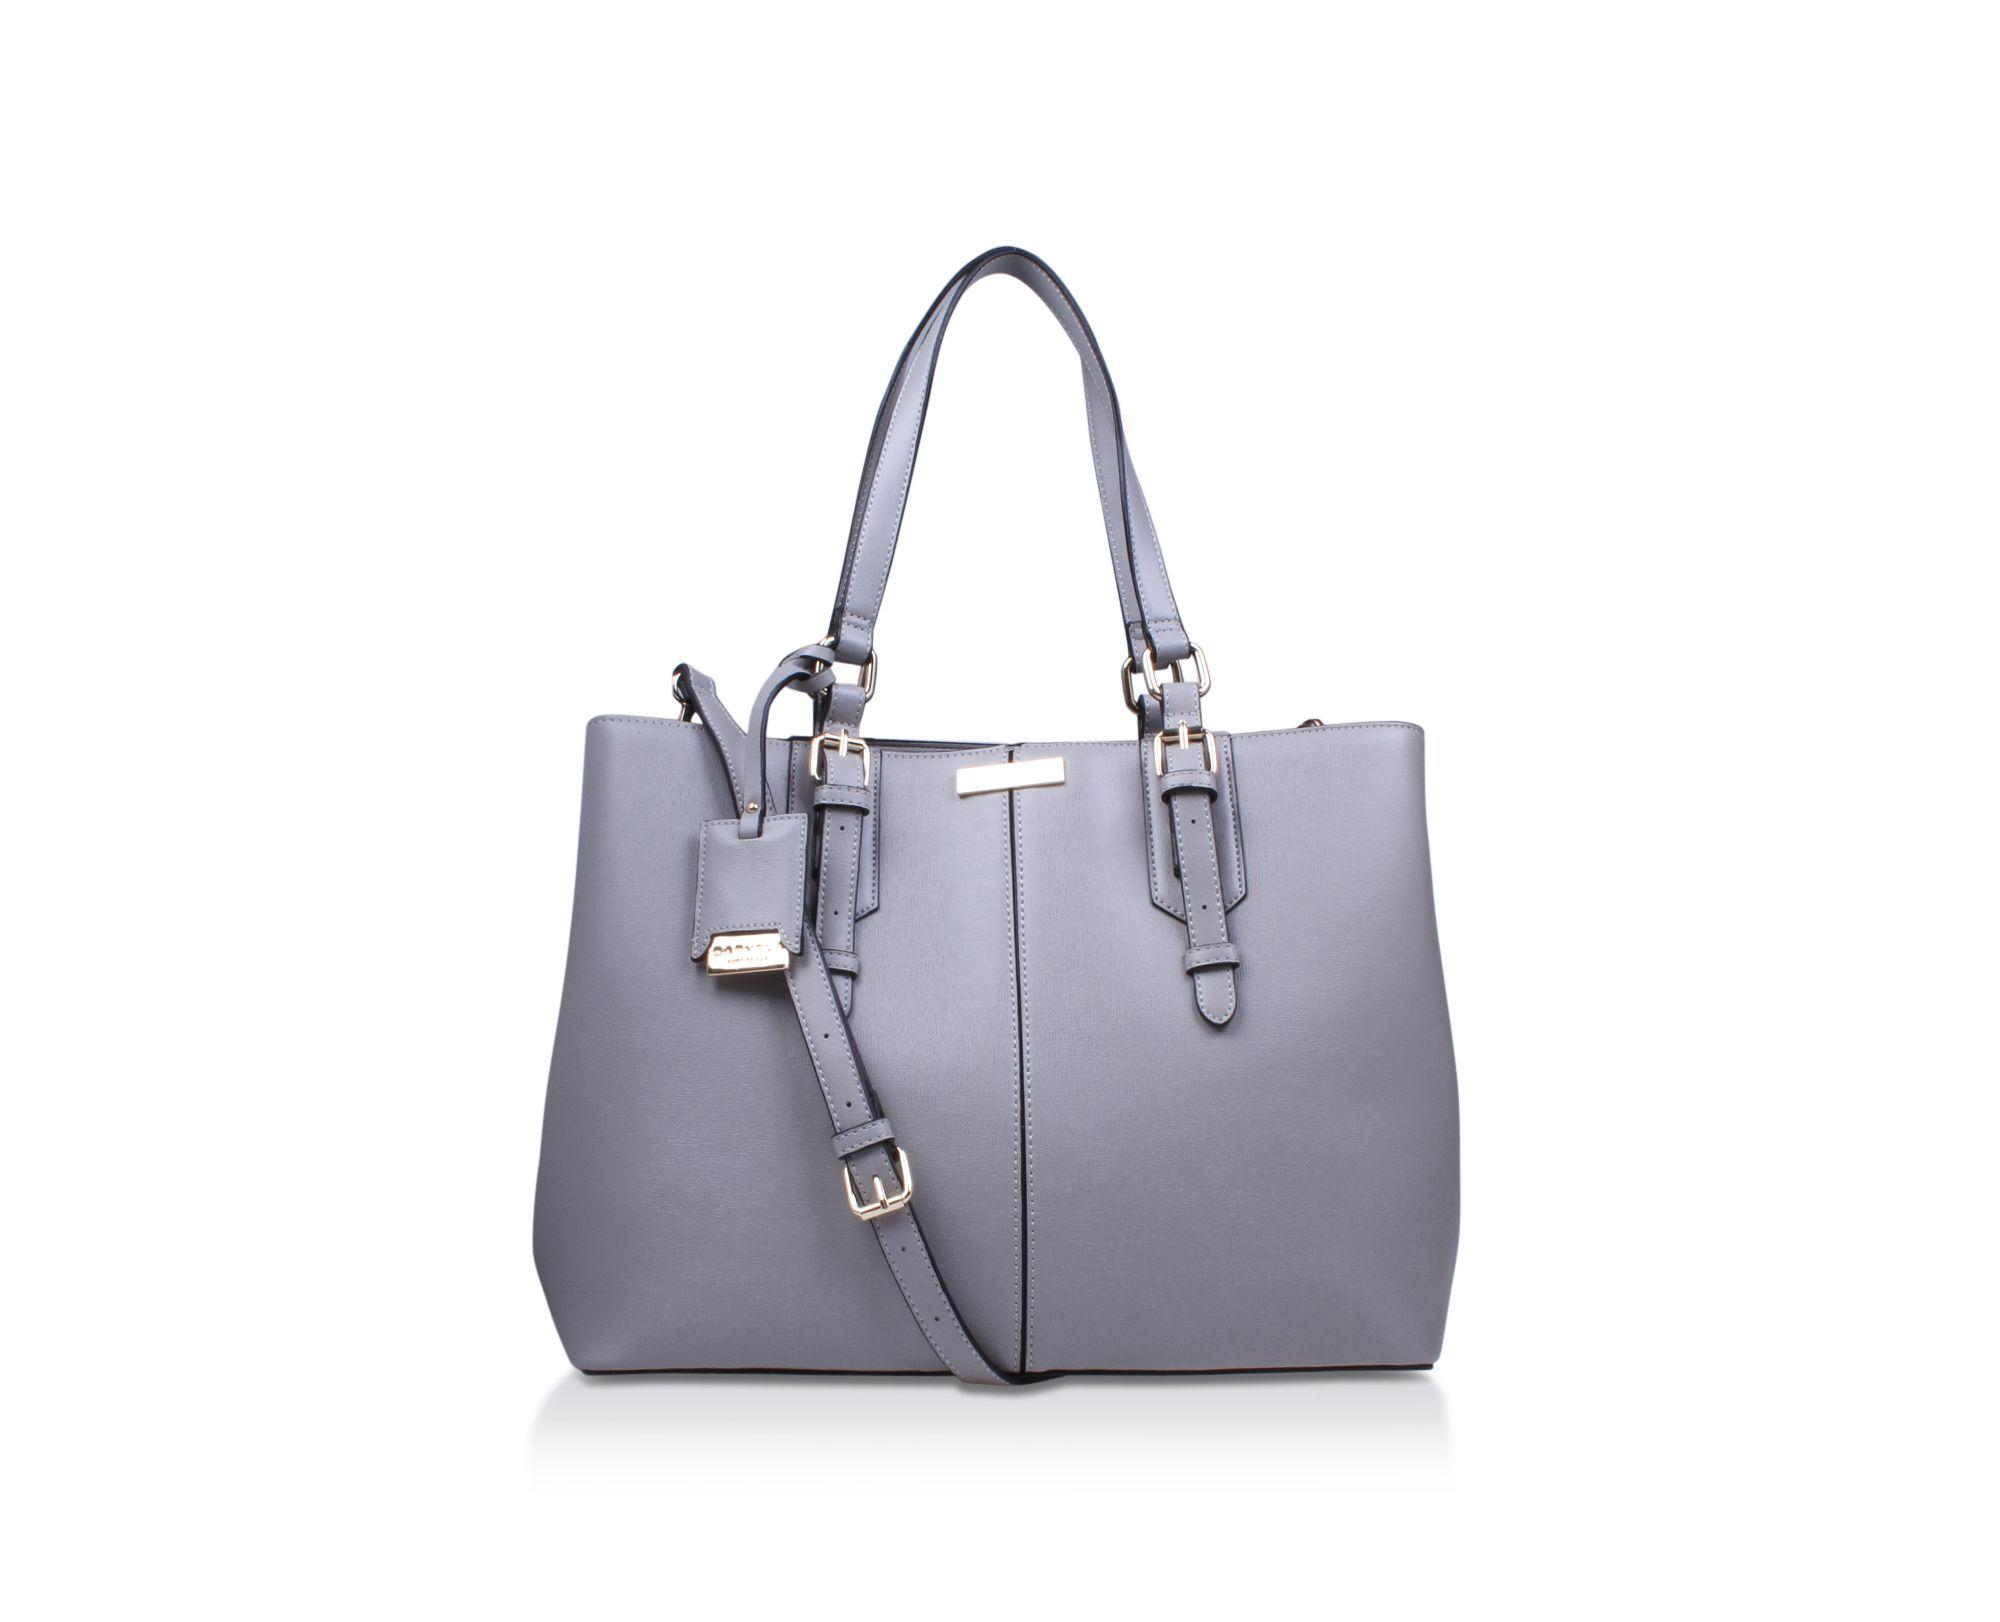 f0282c08d9d8 Carvela Kurt Geiger Grey  ortha2 Slouch Tote  Tote Bag in Gray - Lyst